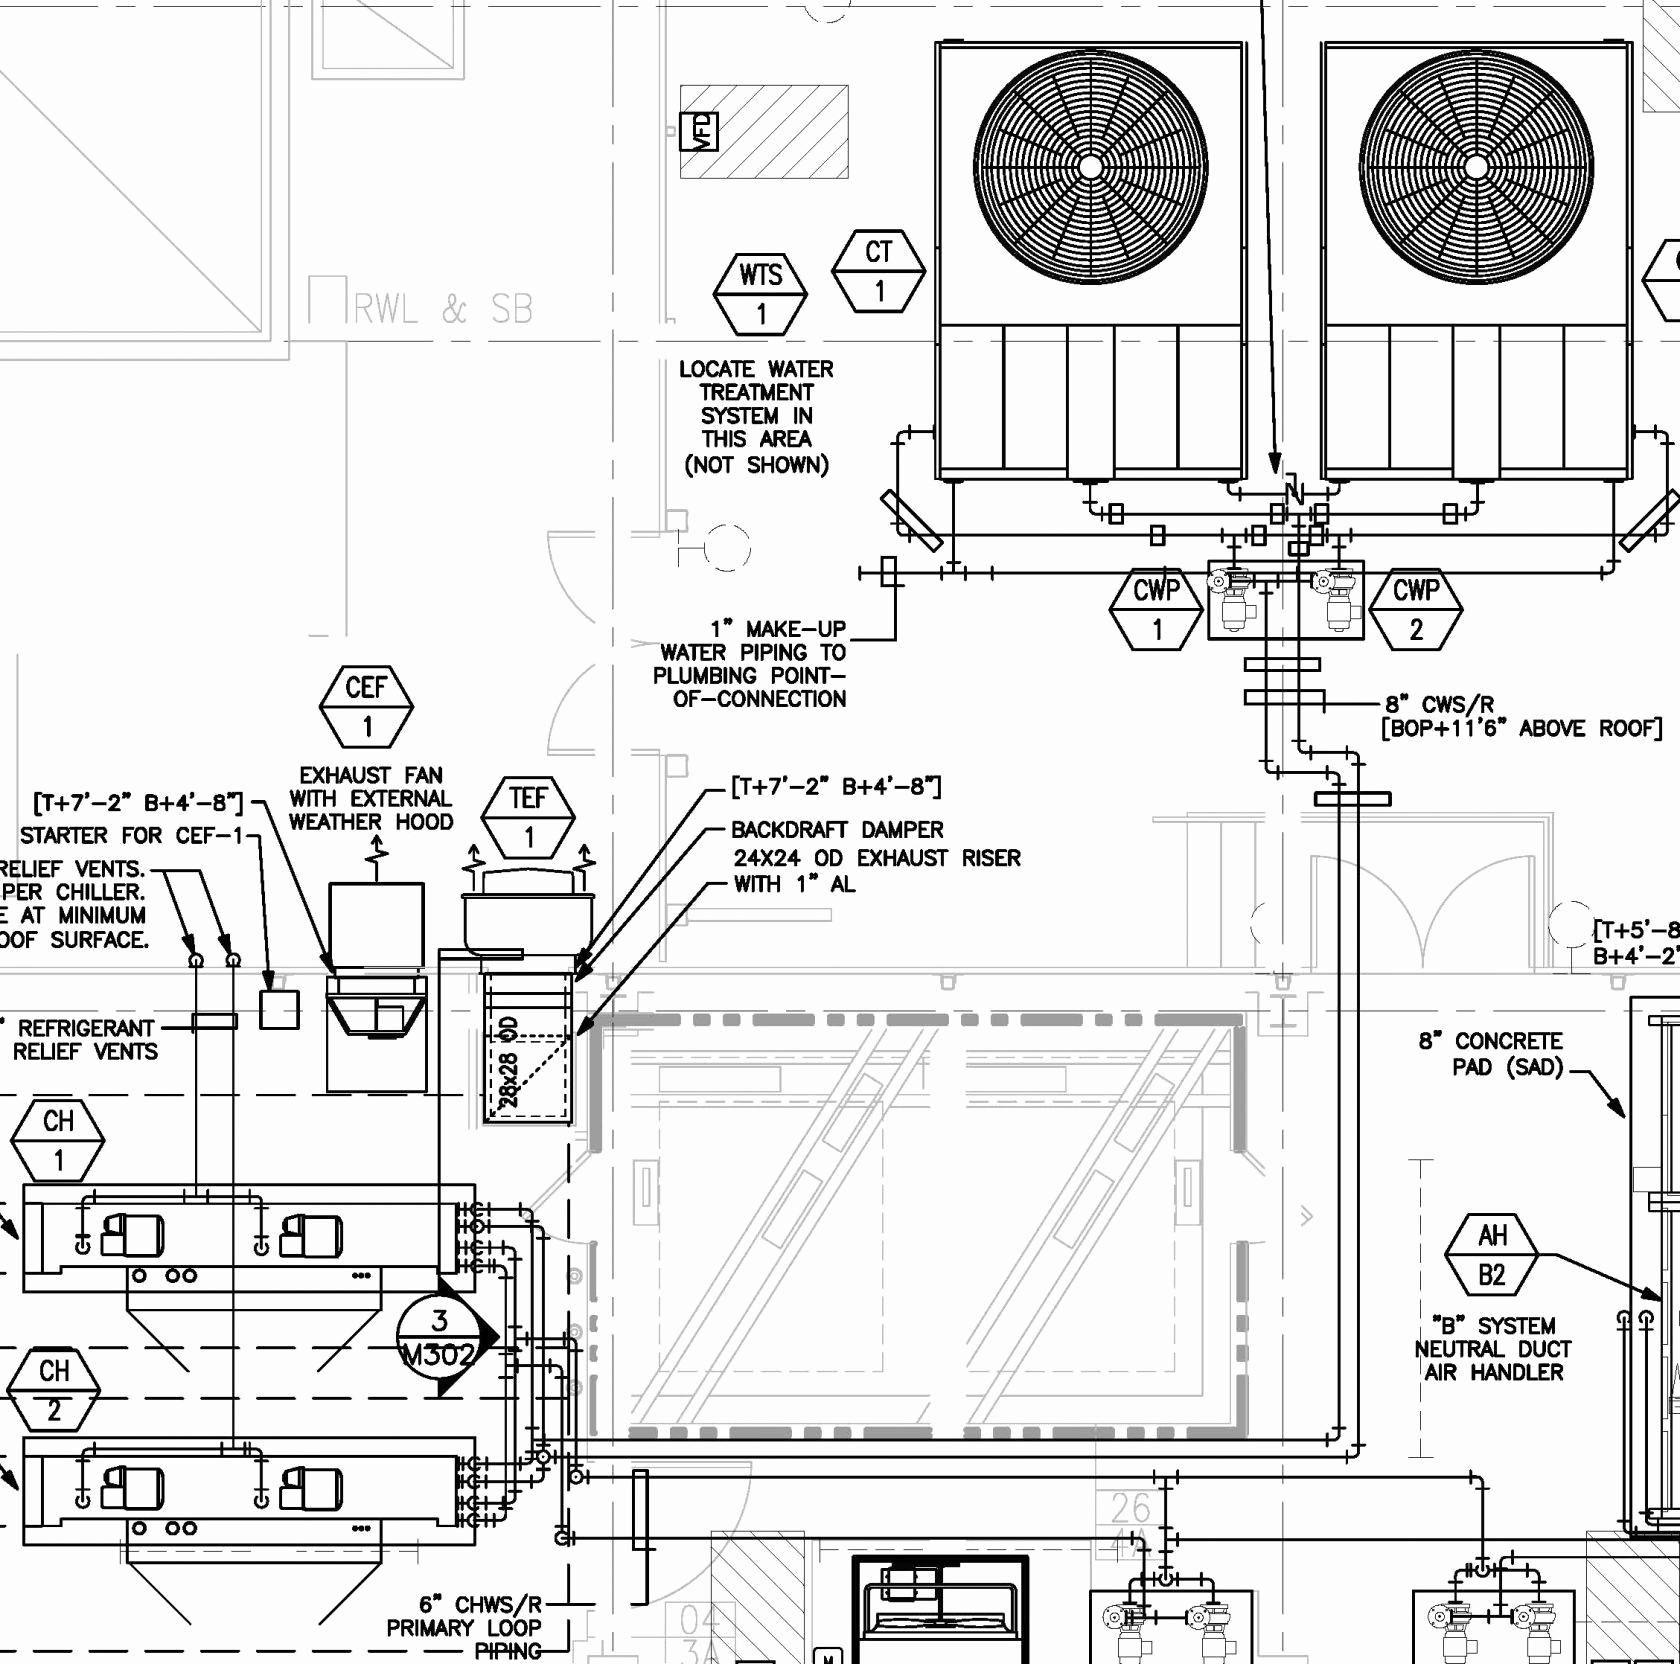 swimming pool electrical wiring diagram Download-Swimming Pool Timer Wiring Diagram for Electrical Panel Diagram New Electrical Panel Wiring Diagram Awesome 6-l